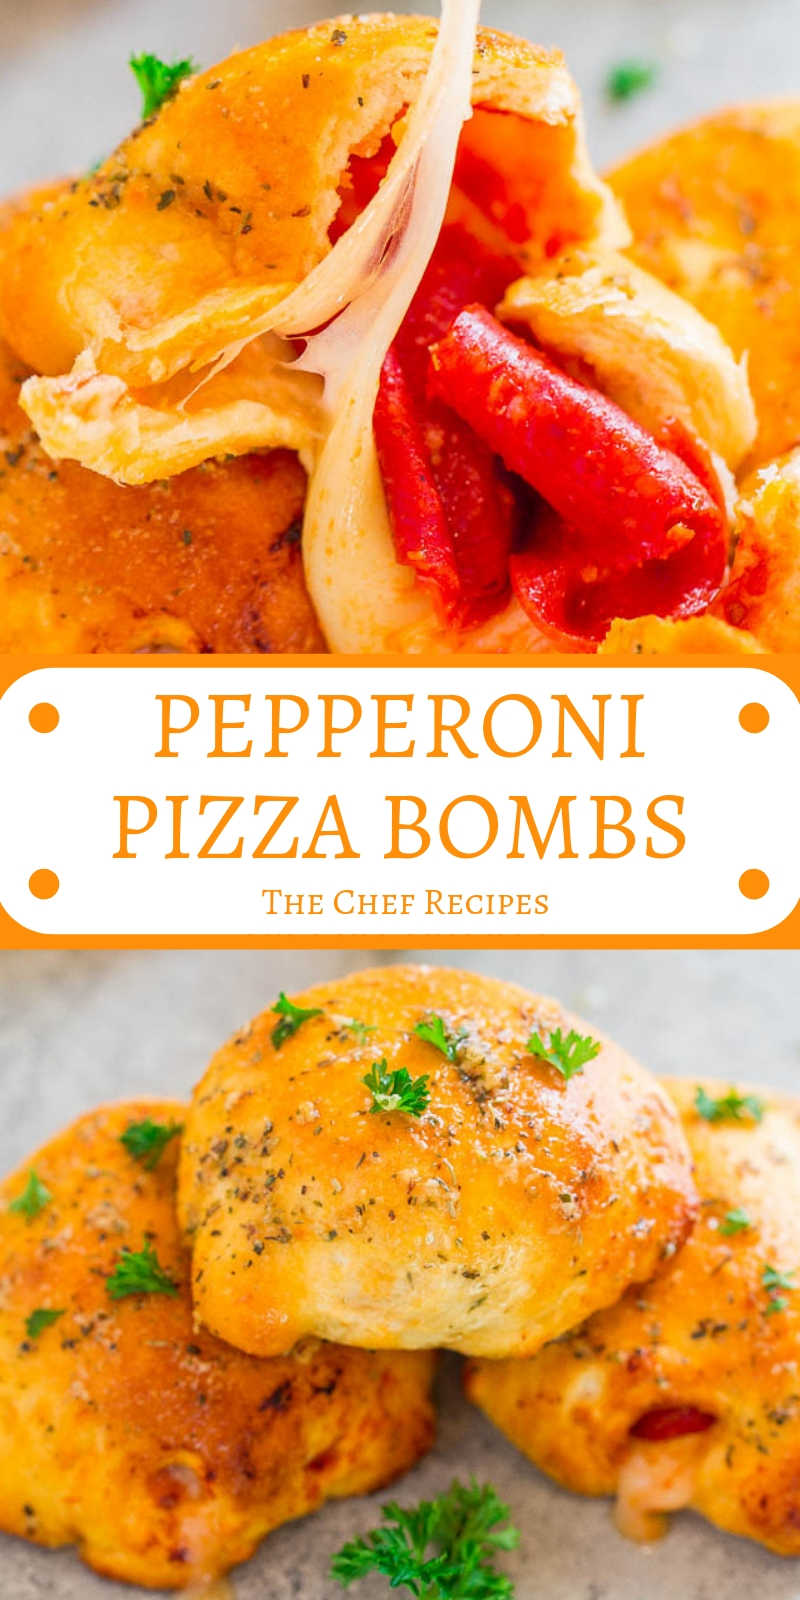 PEPPERONI PIZZA BOMBS